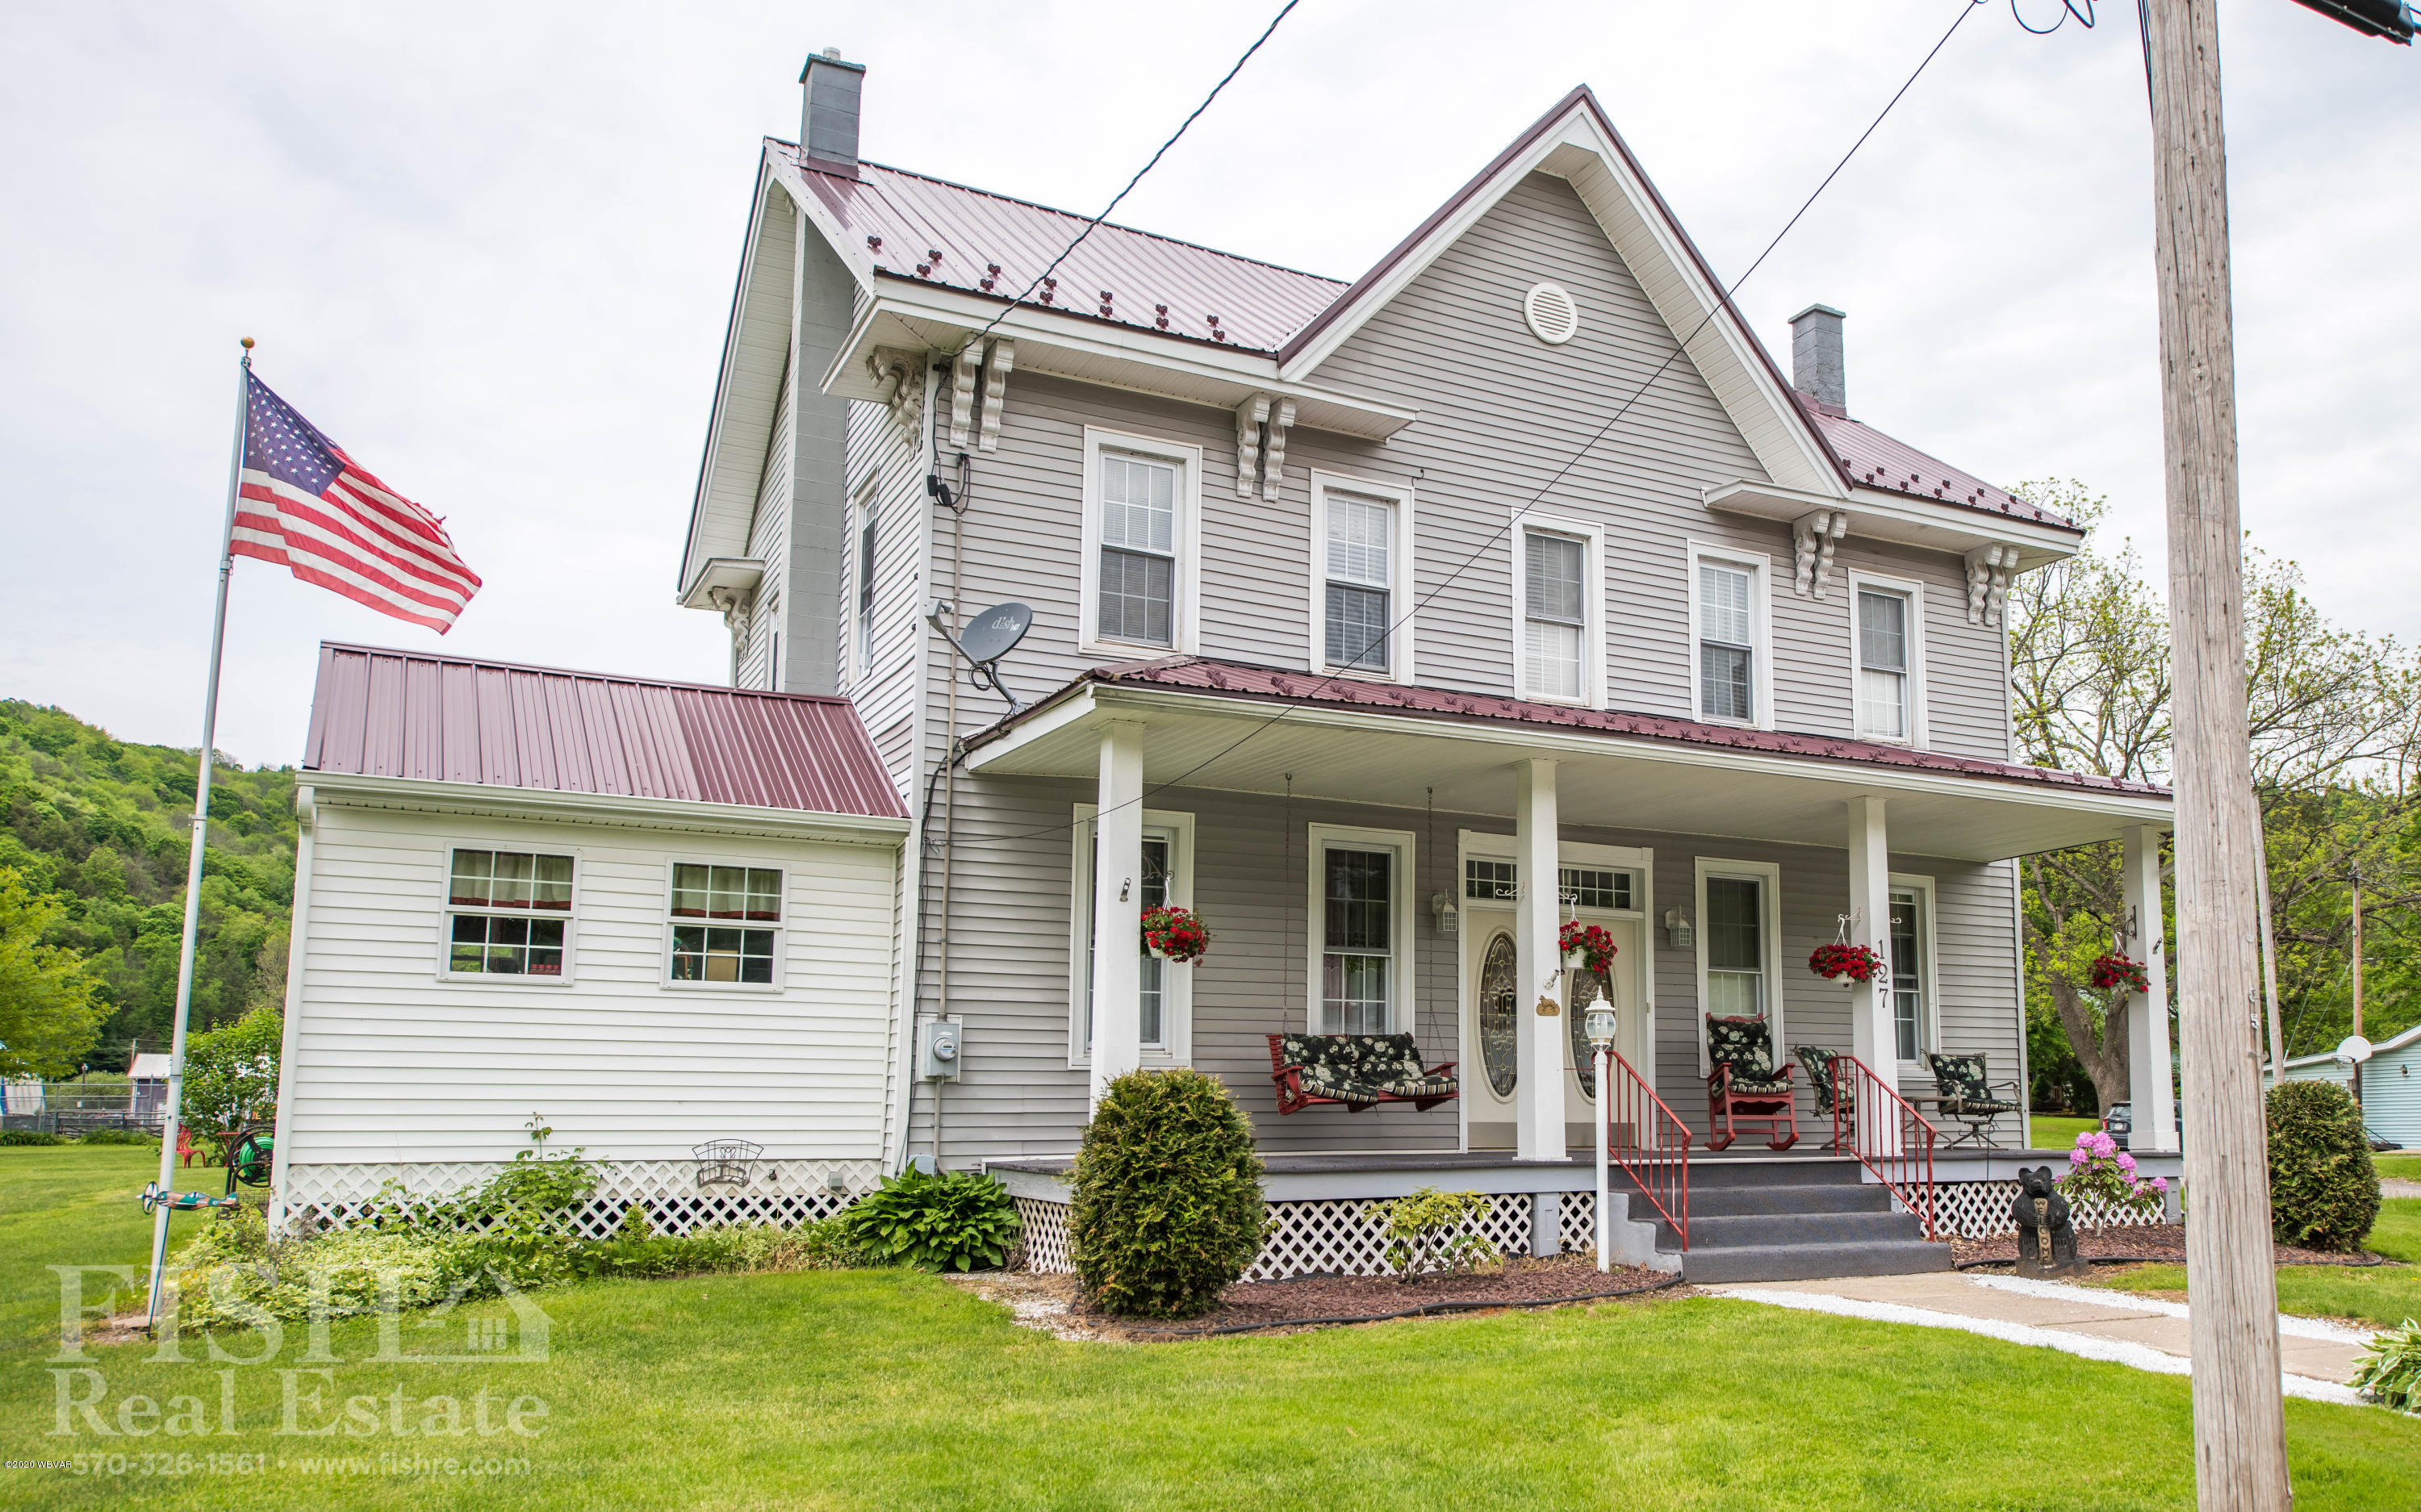 127 MAIN STREET, Muncy Valley, PA 17758, 4 Bedrooms Bedrooms, ,2 BathroomsBathrooms,Residential,For sale,MAIN,WB-90098